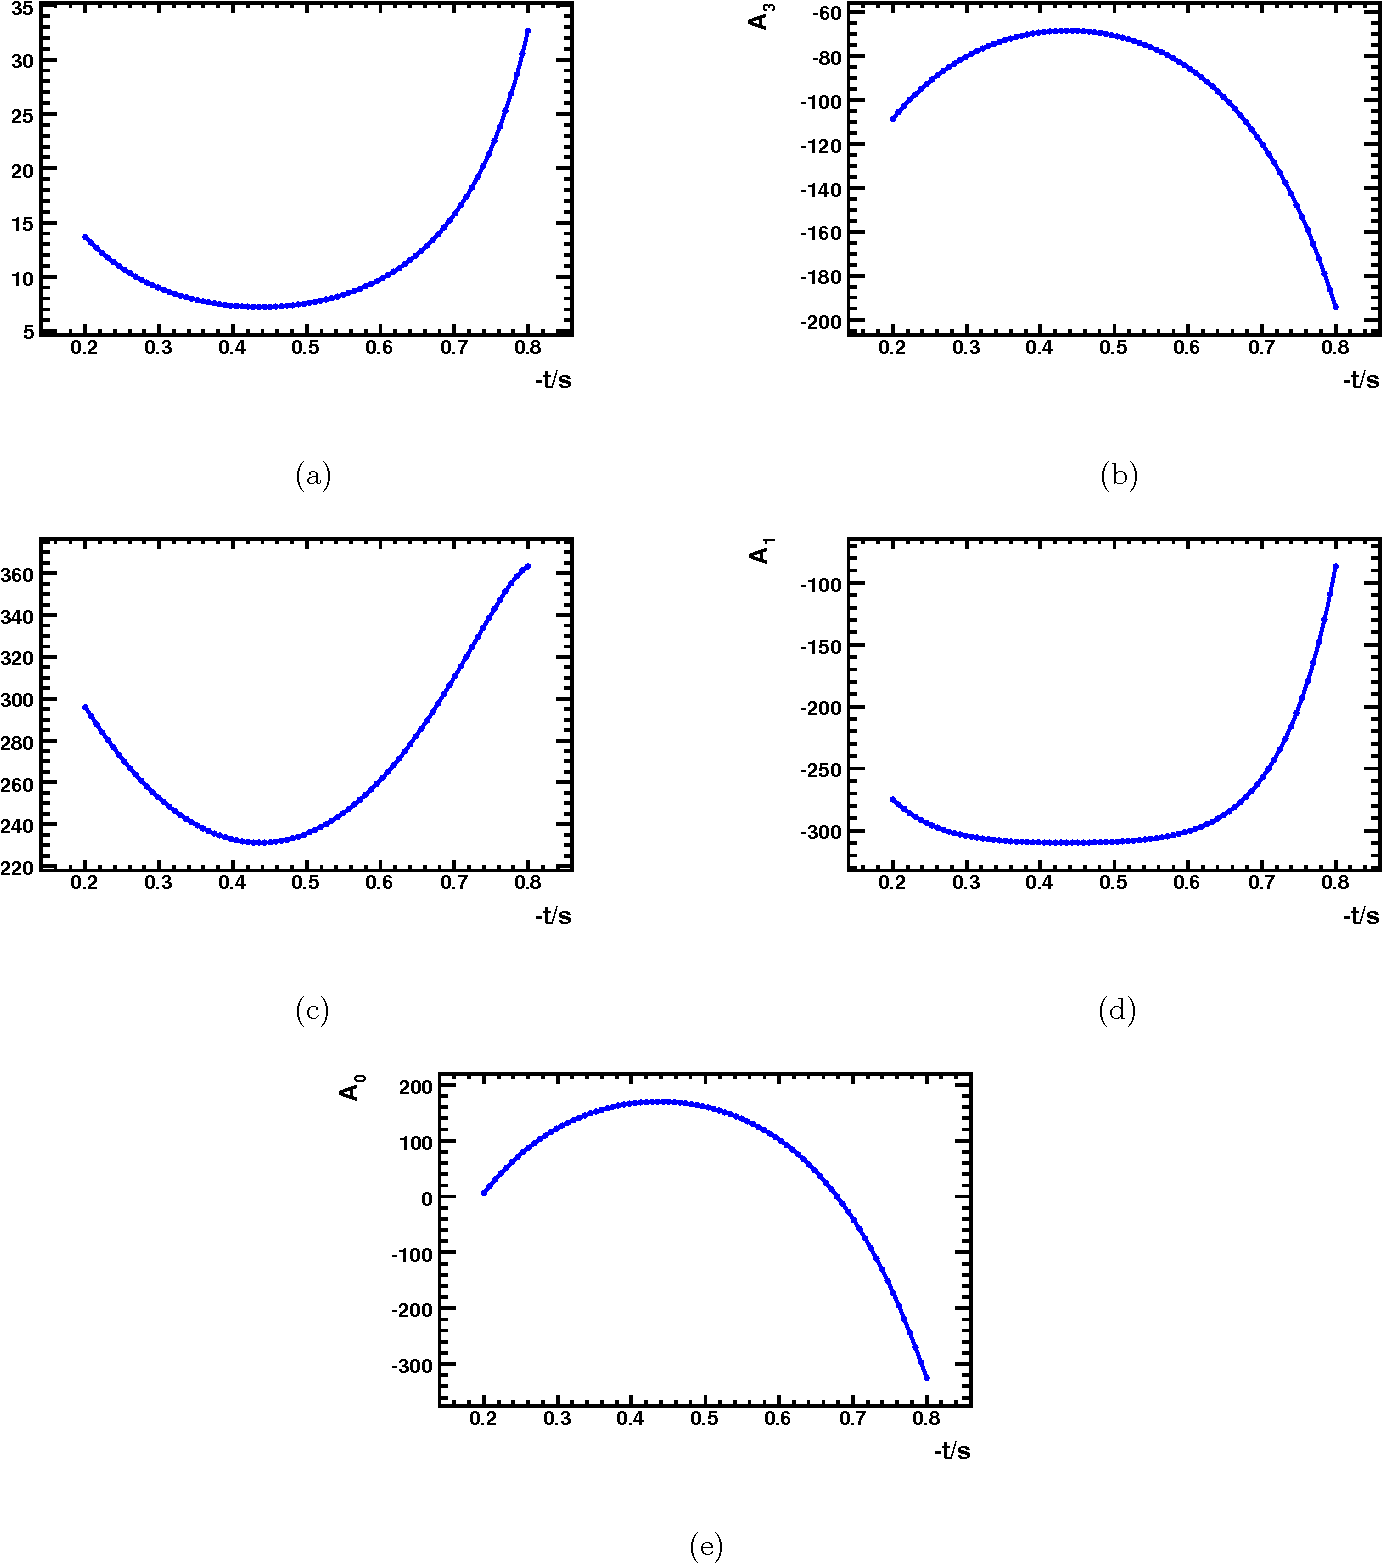 Figure 2: Results for (a) A4 vs −t/s, (b) A3 vs −t/s, (c) A2 vs −t/s, (d) A1 vs −t/s and (e) A0 vs −t/s. A4, A3, A2, A1 and A0 are defined in Eq. (2.18).